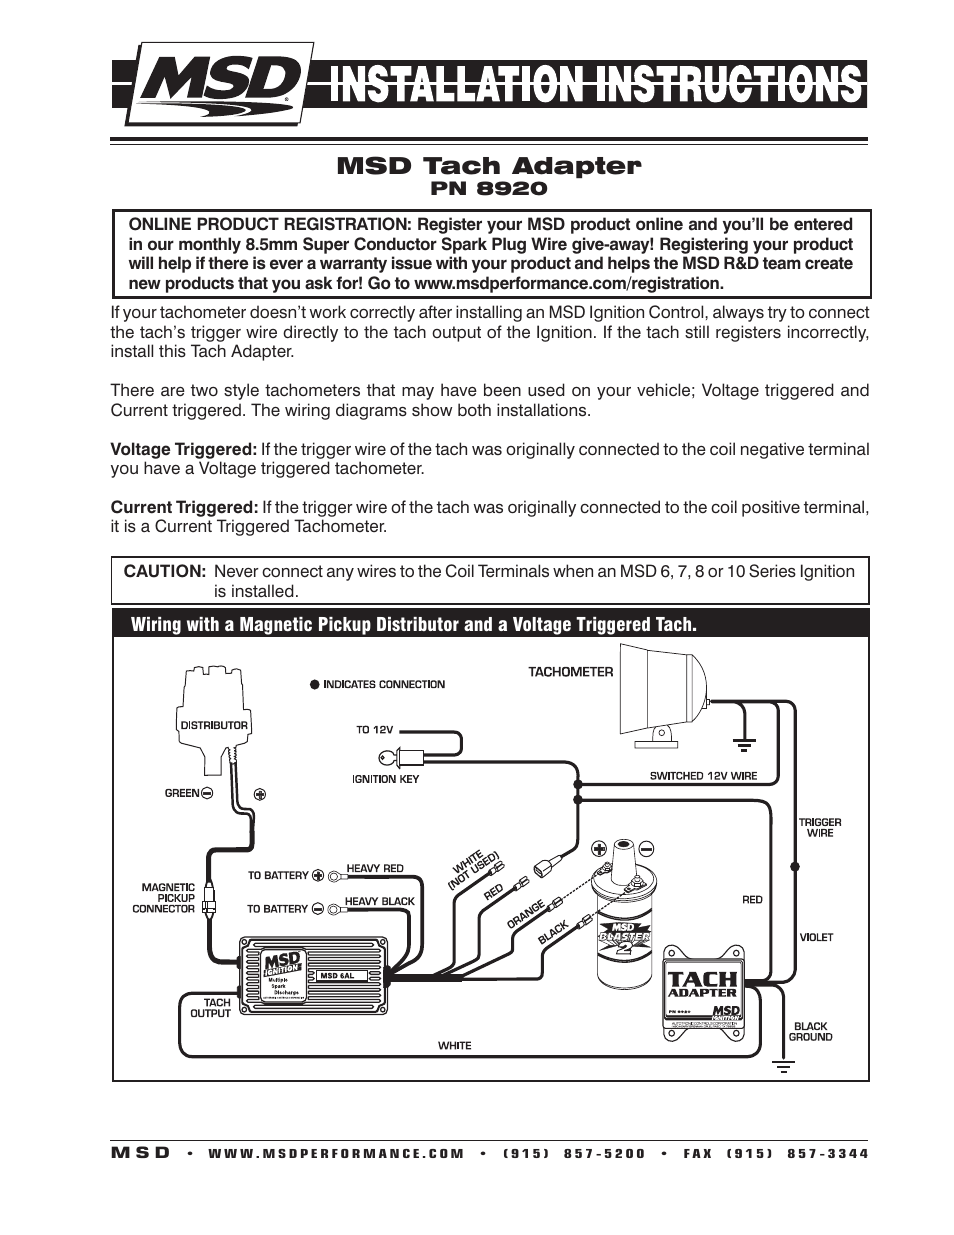 medium resolution of msd 8920 tach adapter magnetic trigger installation user manual 2msd 8920 tach adapter magnetic